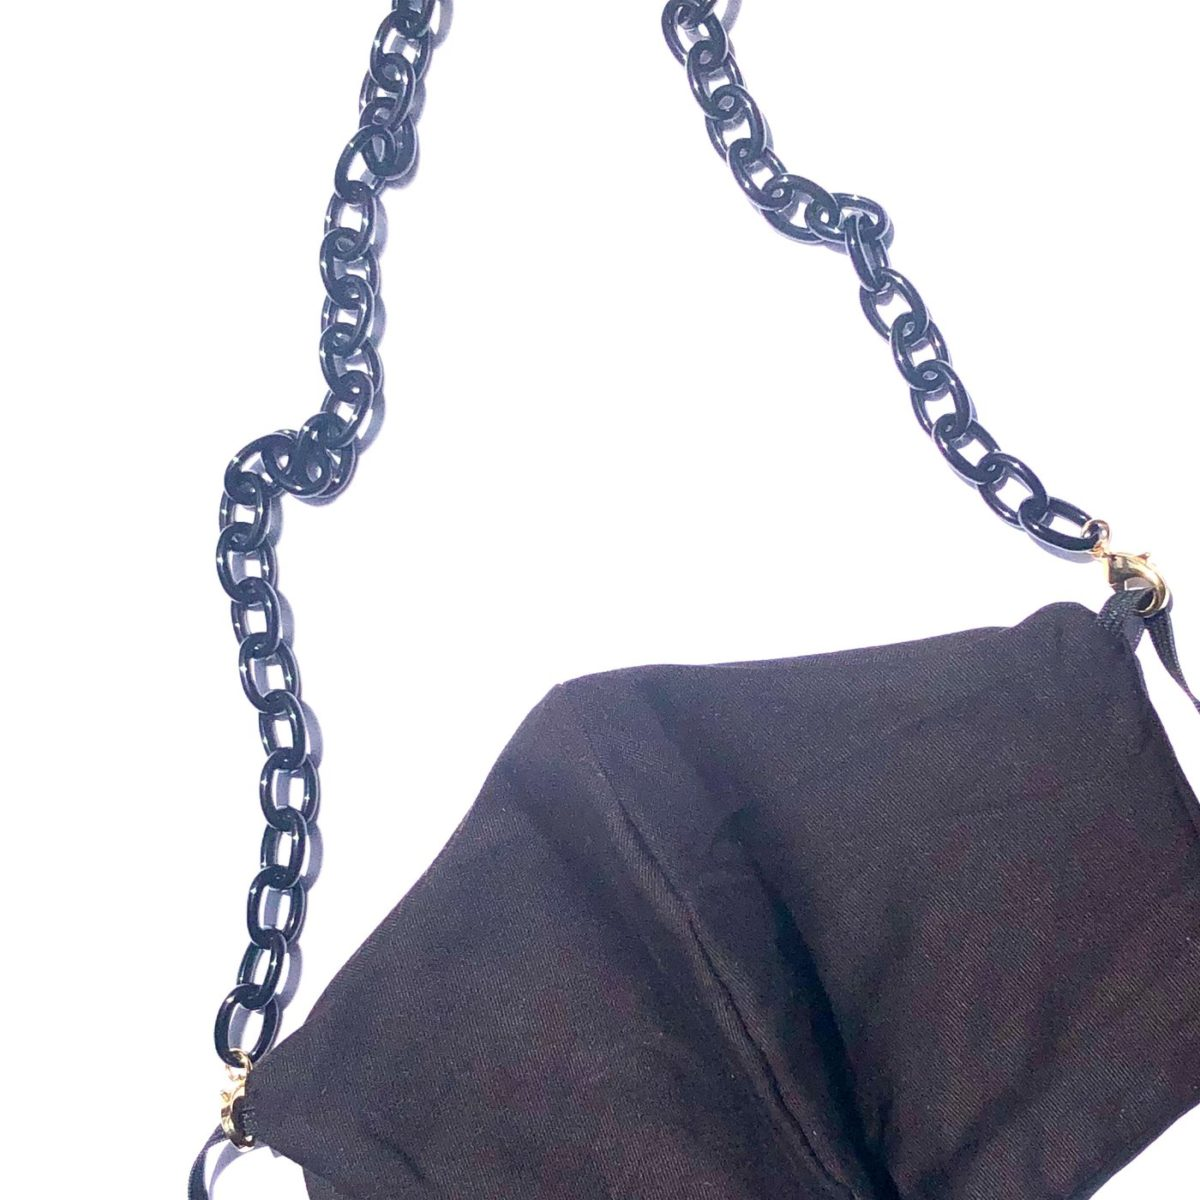 La Mask by Laloop Small Link Black Necklace Chain for Facemasks